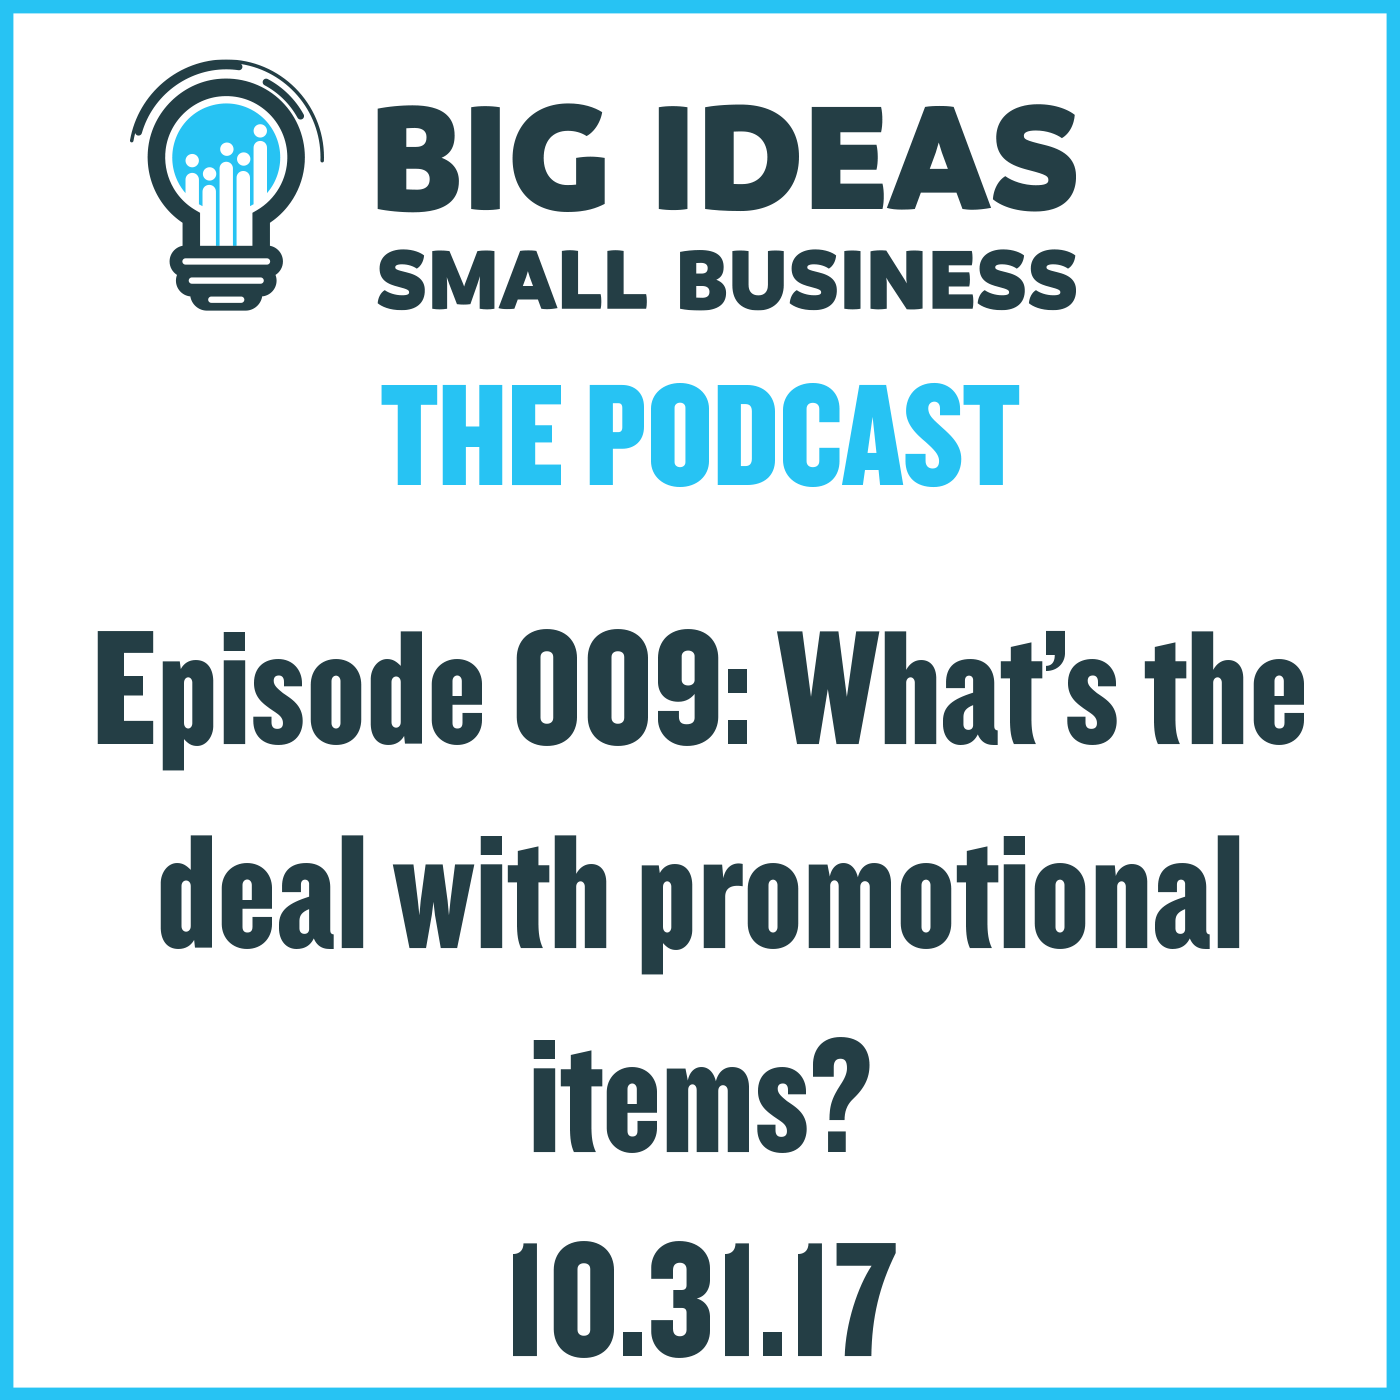 What's the deal with promotional items?